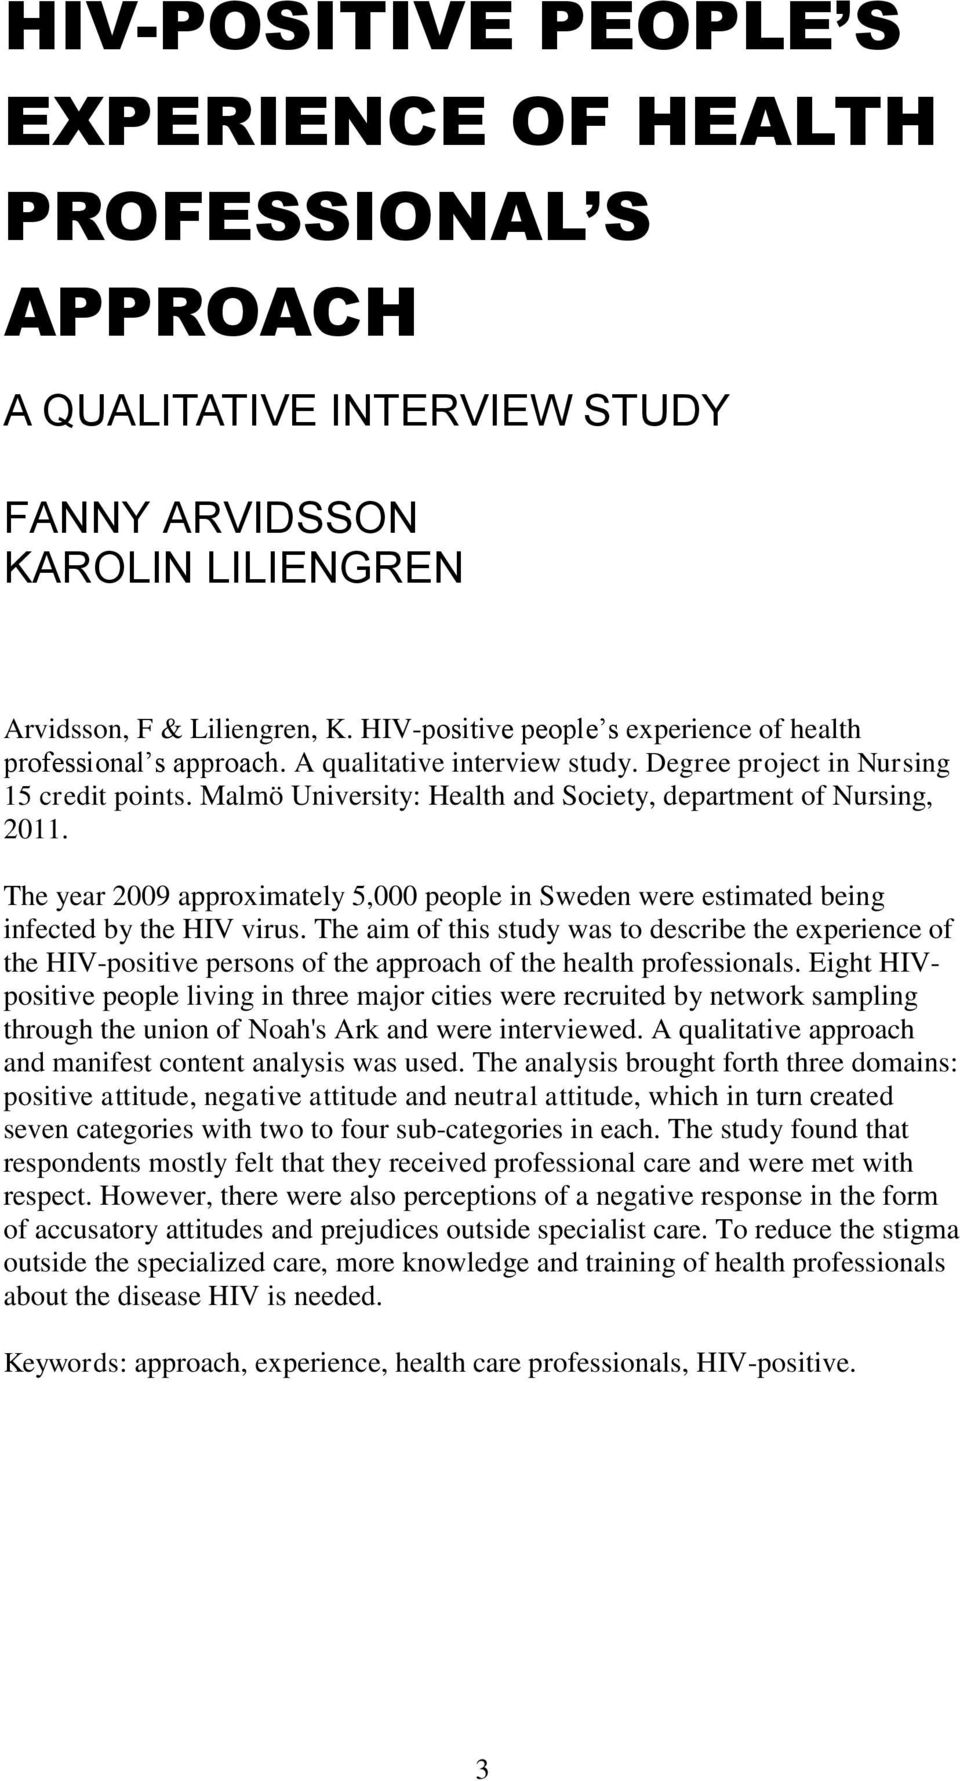 Malmö University: Health and Society, department of Nursing, 2011. The year 2009 approximately 5,000 people in Sweden were estimated being infected by the HIV virus.